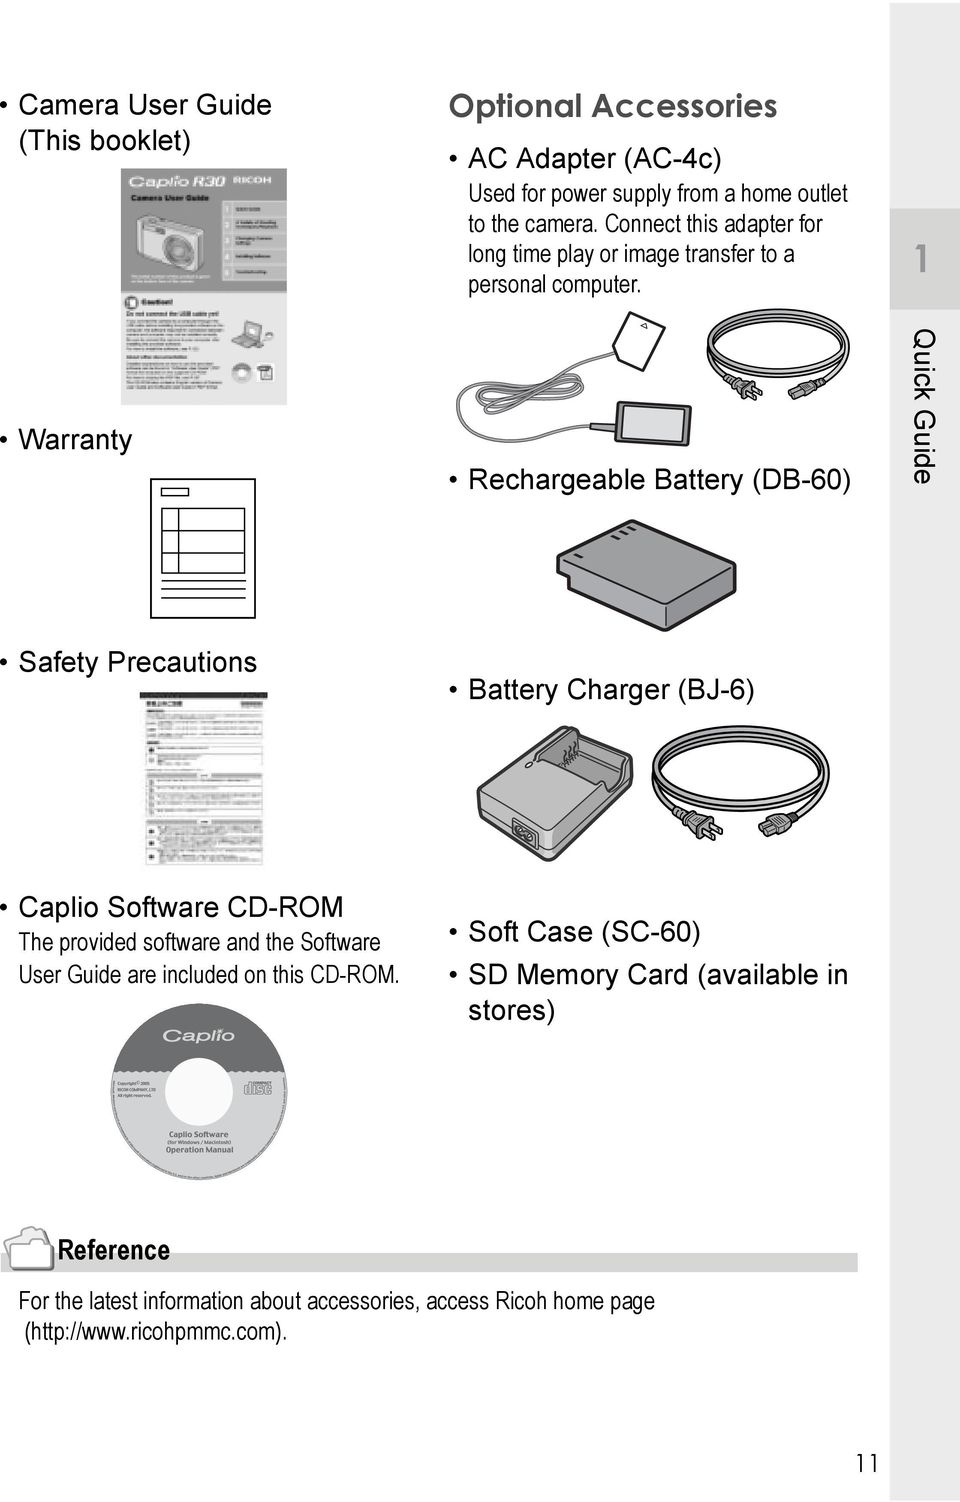 Warranty Rechargeable Battery (DB-60) Quick Guide Safety Precautions Battery Charger (BJ-6) Caplio Software CD-ROM The provided software and